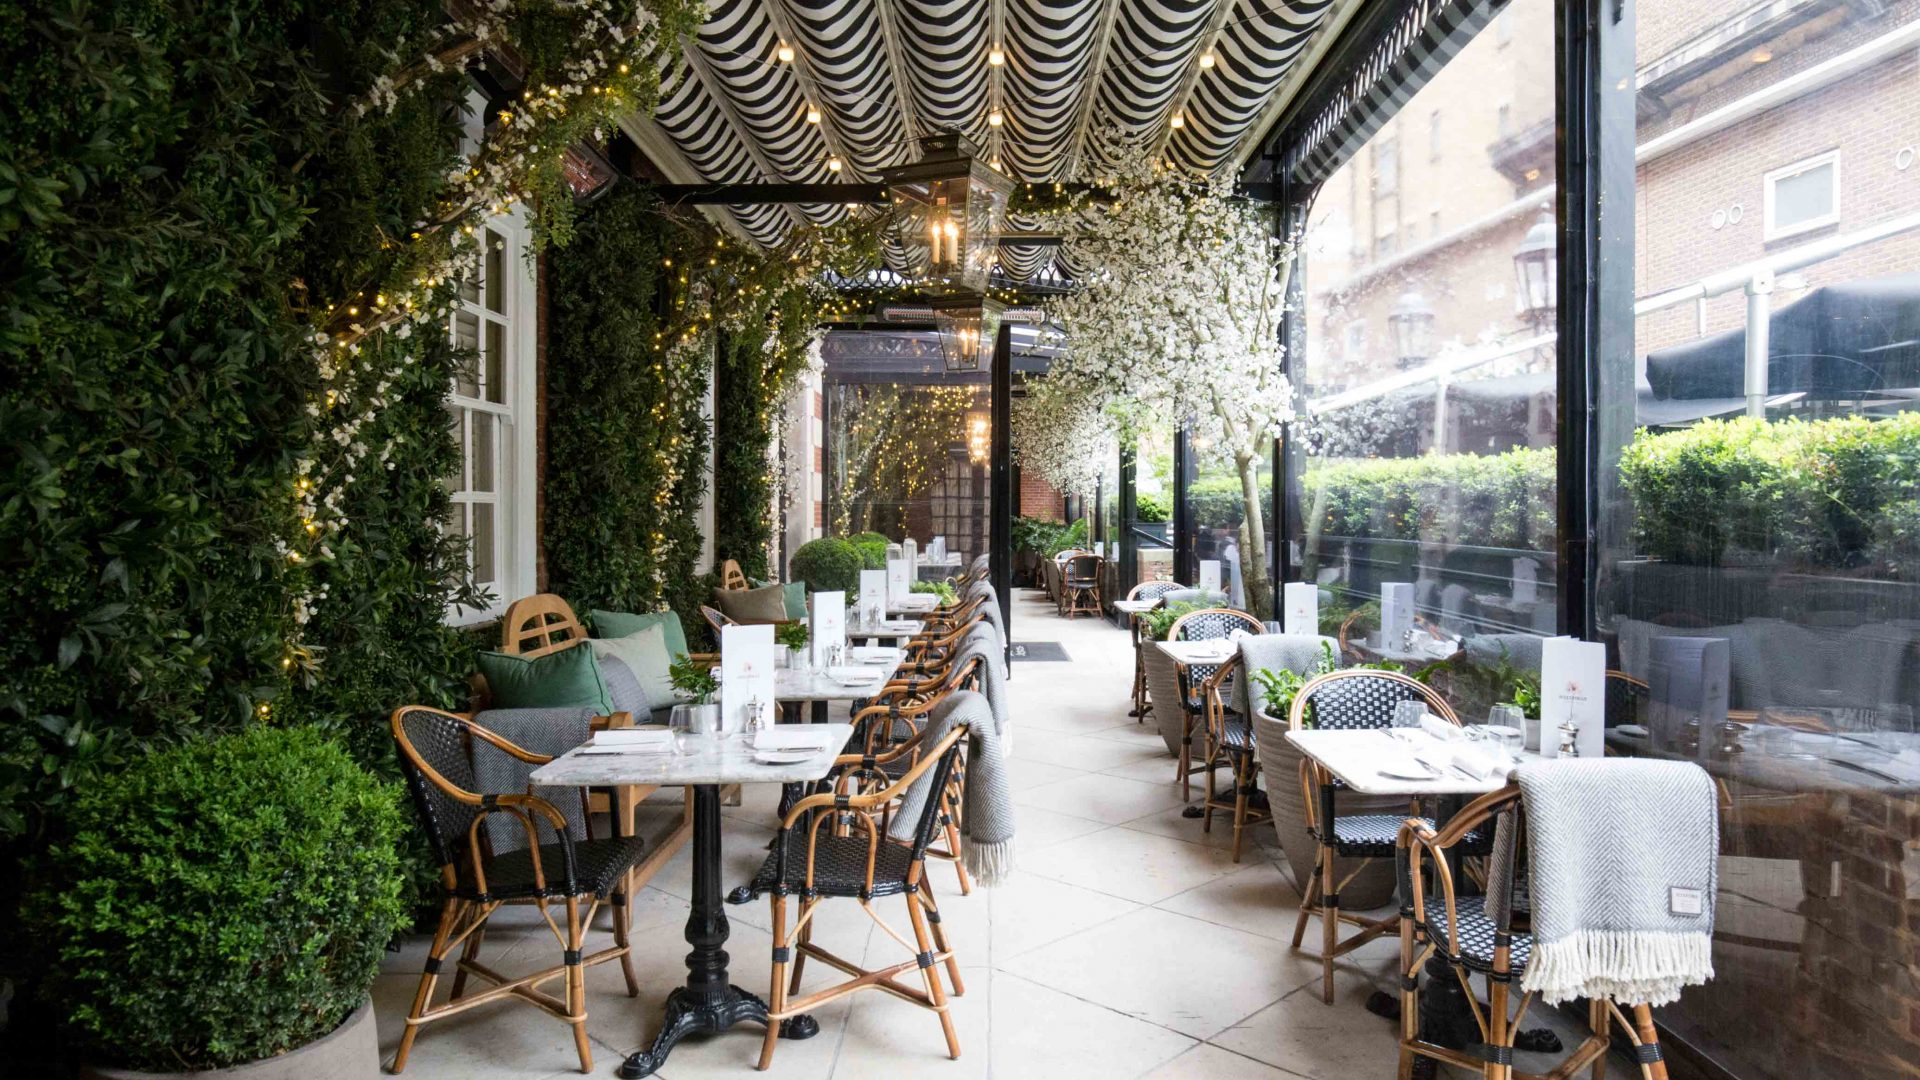 dalloway terrace bar is an elegant poetic and